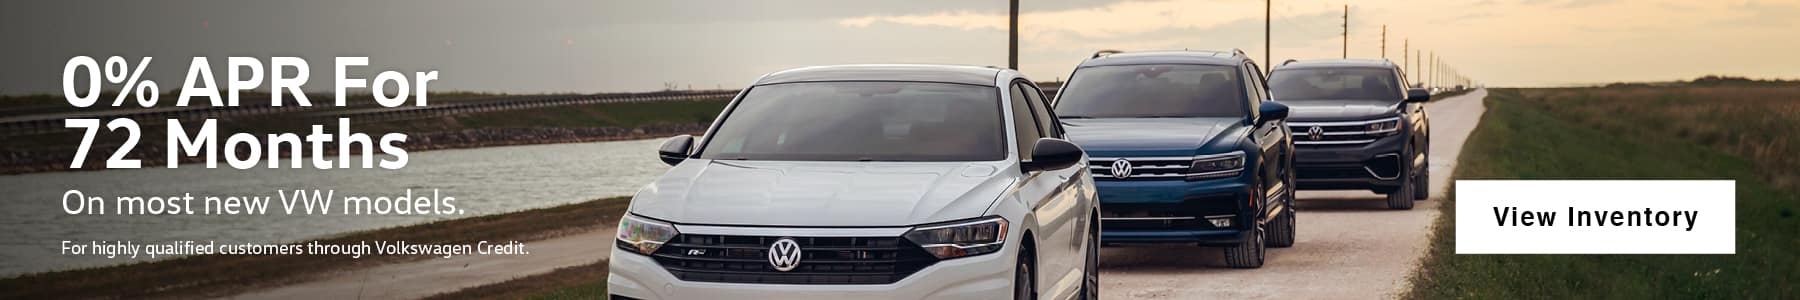 As Low As 0% APR for Up to 72 Months. 0% APR, no down payment required. Available on new, unused 2020 Tiguan, 2020 Jetta, 2020 Jetta GLI, 2020 Passat, 2020 Golf GTI, 2019 Golf SportWagen, 2019 Golf Alltrack, 2020 Golf ALL, 2019 Beetle, 2019 Golf R, 2020 Arteon, models financed by Volkswagen Credit through participating dealers only. Example: For 0% APR, monthly payment for every $1,000 you finance for 72 months is $13.89. Available on new, unused 2020 Atlas Cross Sport models financed by Volkswagen Credit through participating dealers only. Example: For 0% APR, monthly payment for every $1,000 you finance for 60 months is $16.67. Available on new, unused 2021 Atlas models financed by Volkswagen Credit through participating dealers only. Example: For 2.9% APR, monthly payment for every $1,000 you finance for 60 months is $17.92. Not all customers will qualify for credit approval or advertised APR. Offer ends November 2, 2020.